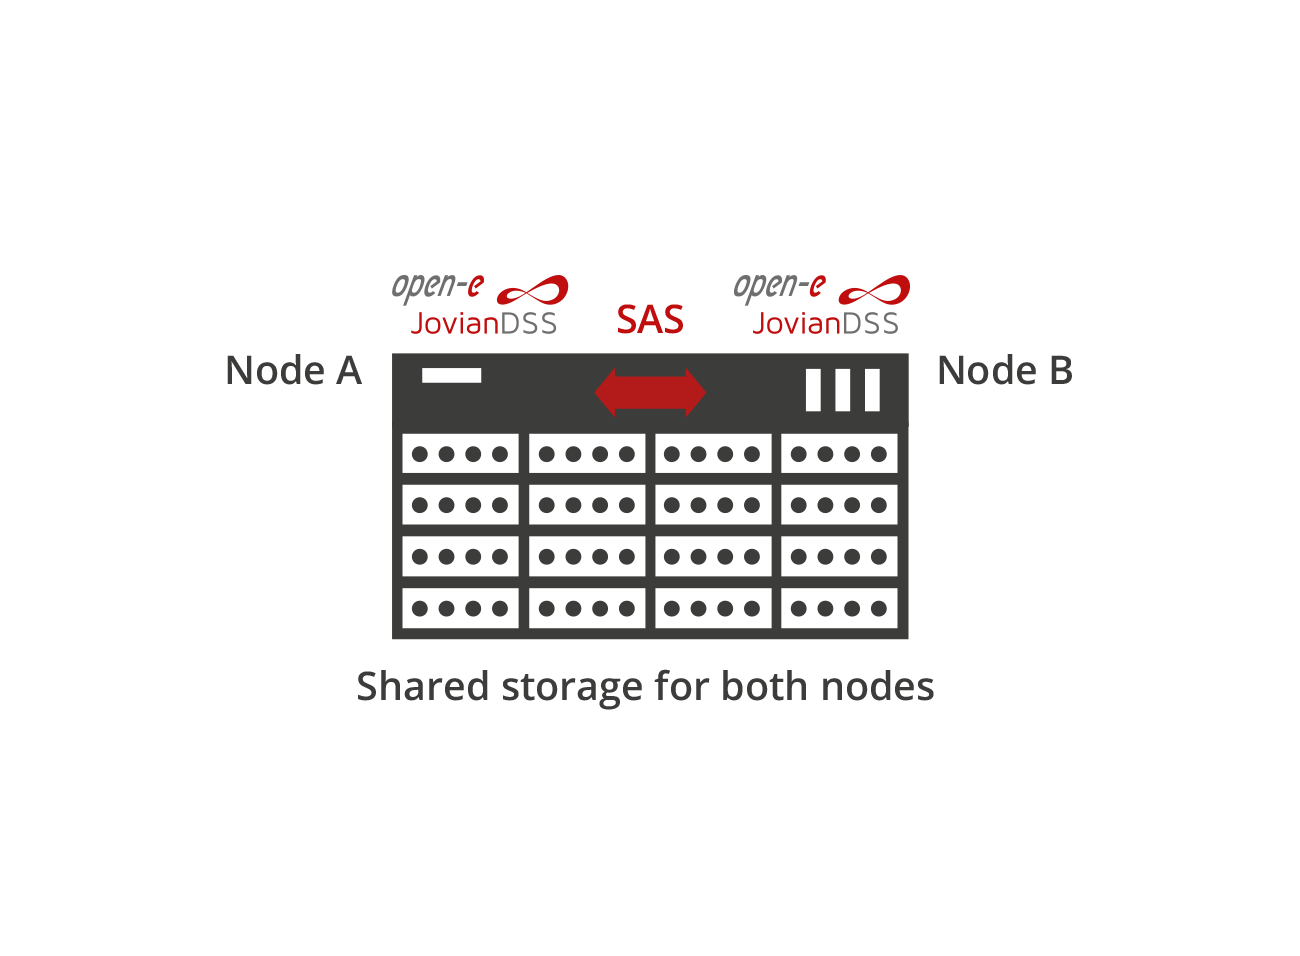 Standard High Availability common storage